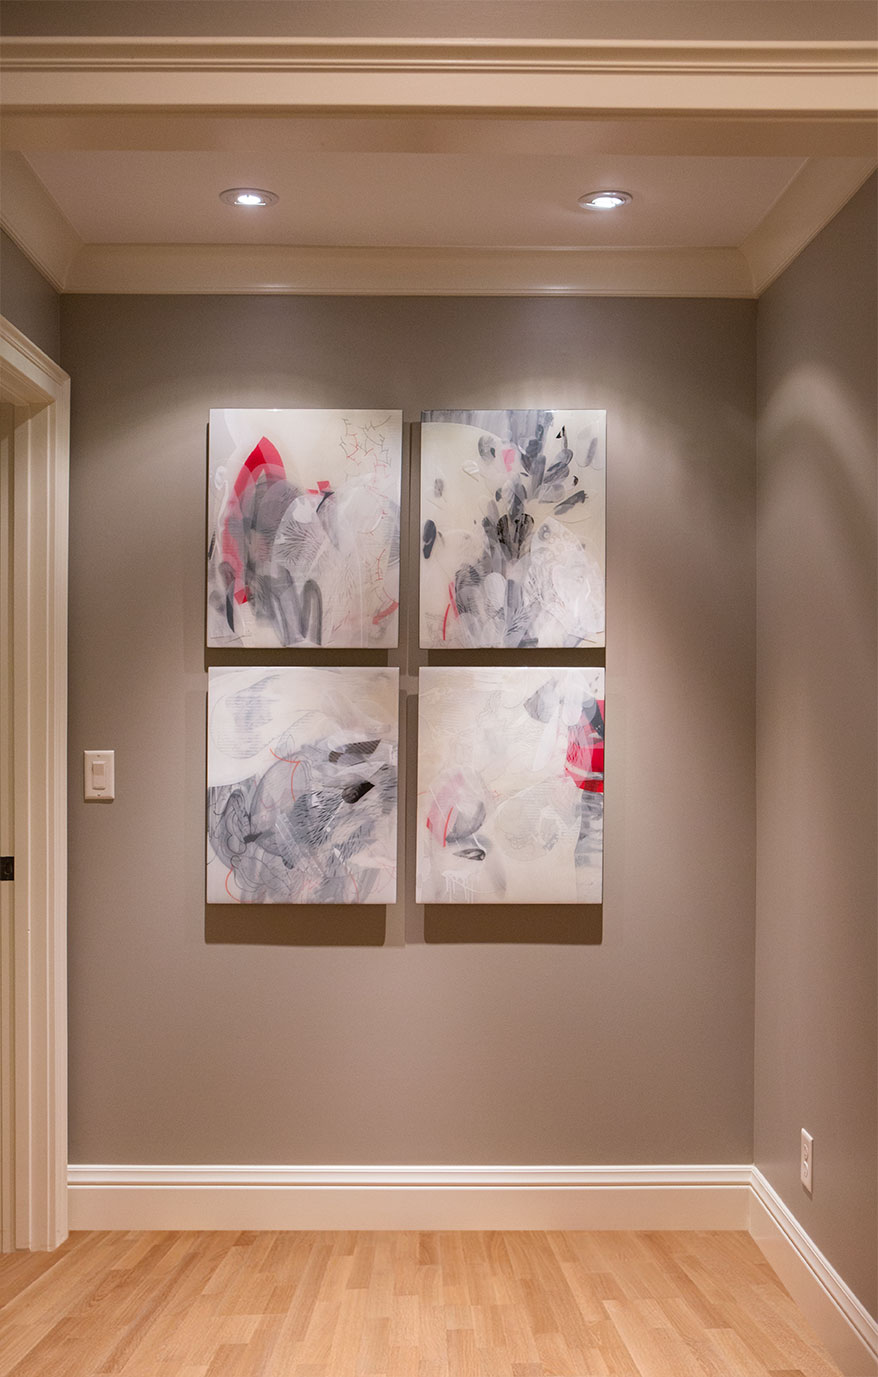 Installation at collectors residence